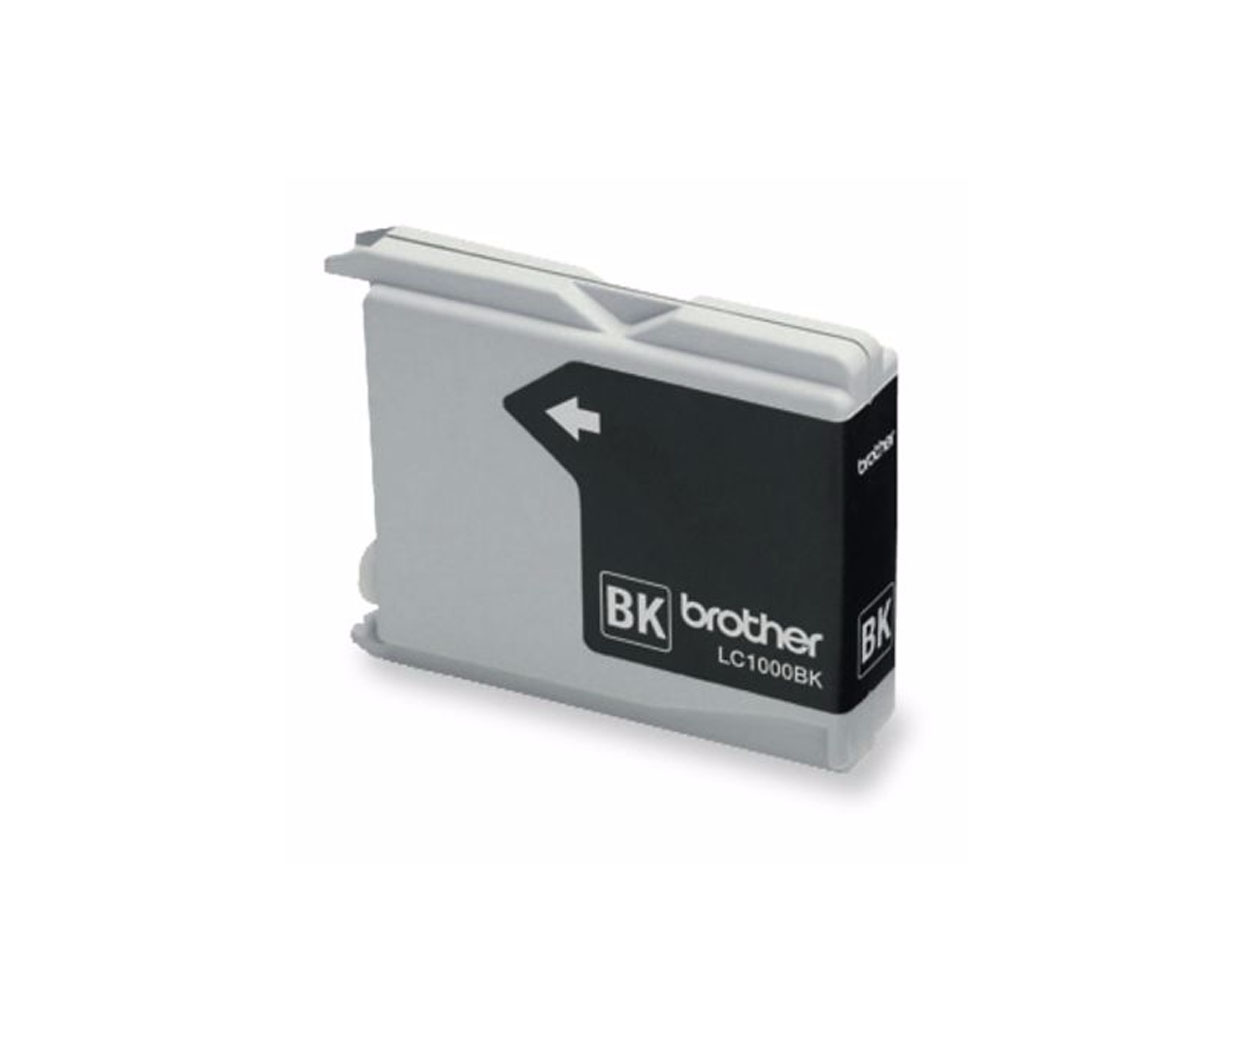 Brother Black LC1000BK Fax Cartridge - Limited stock